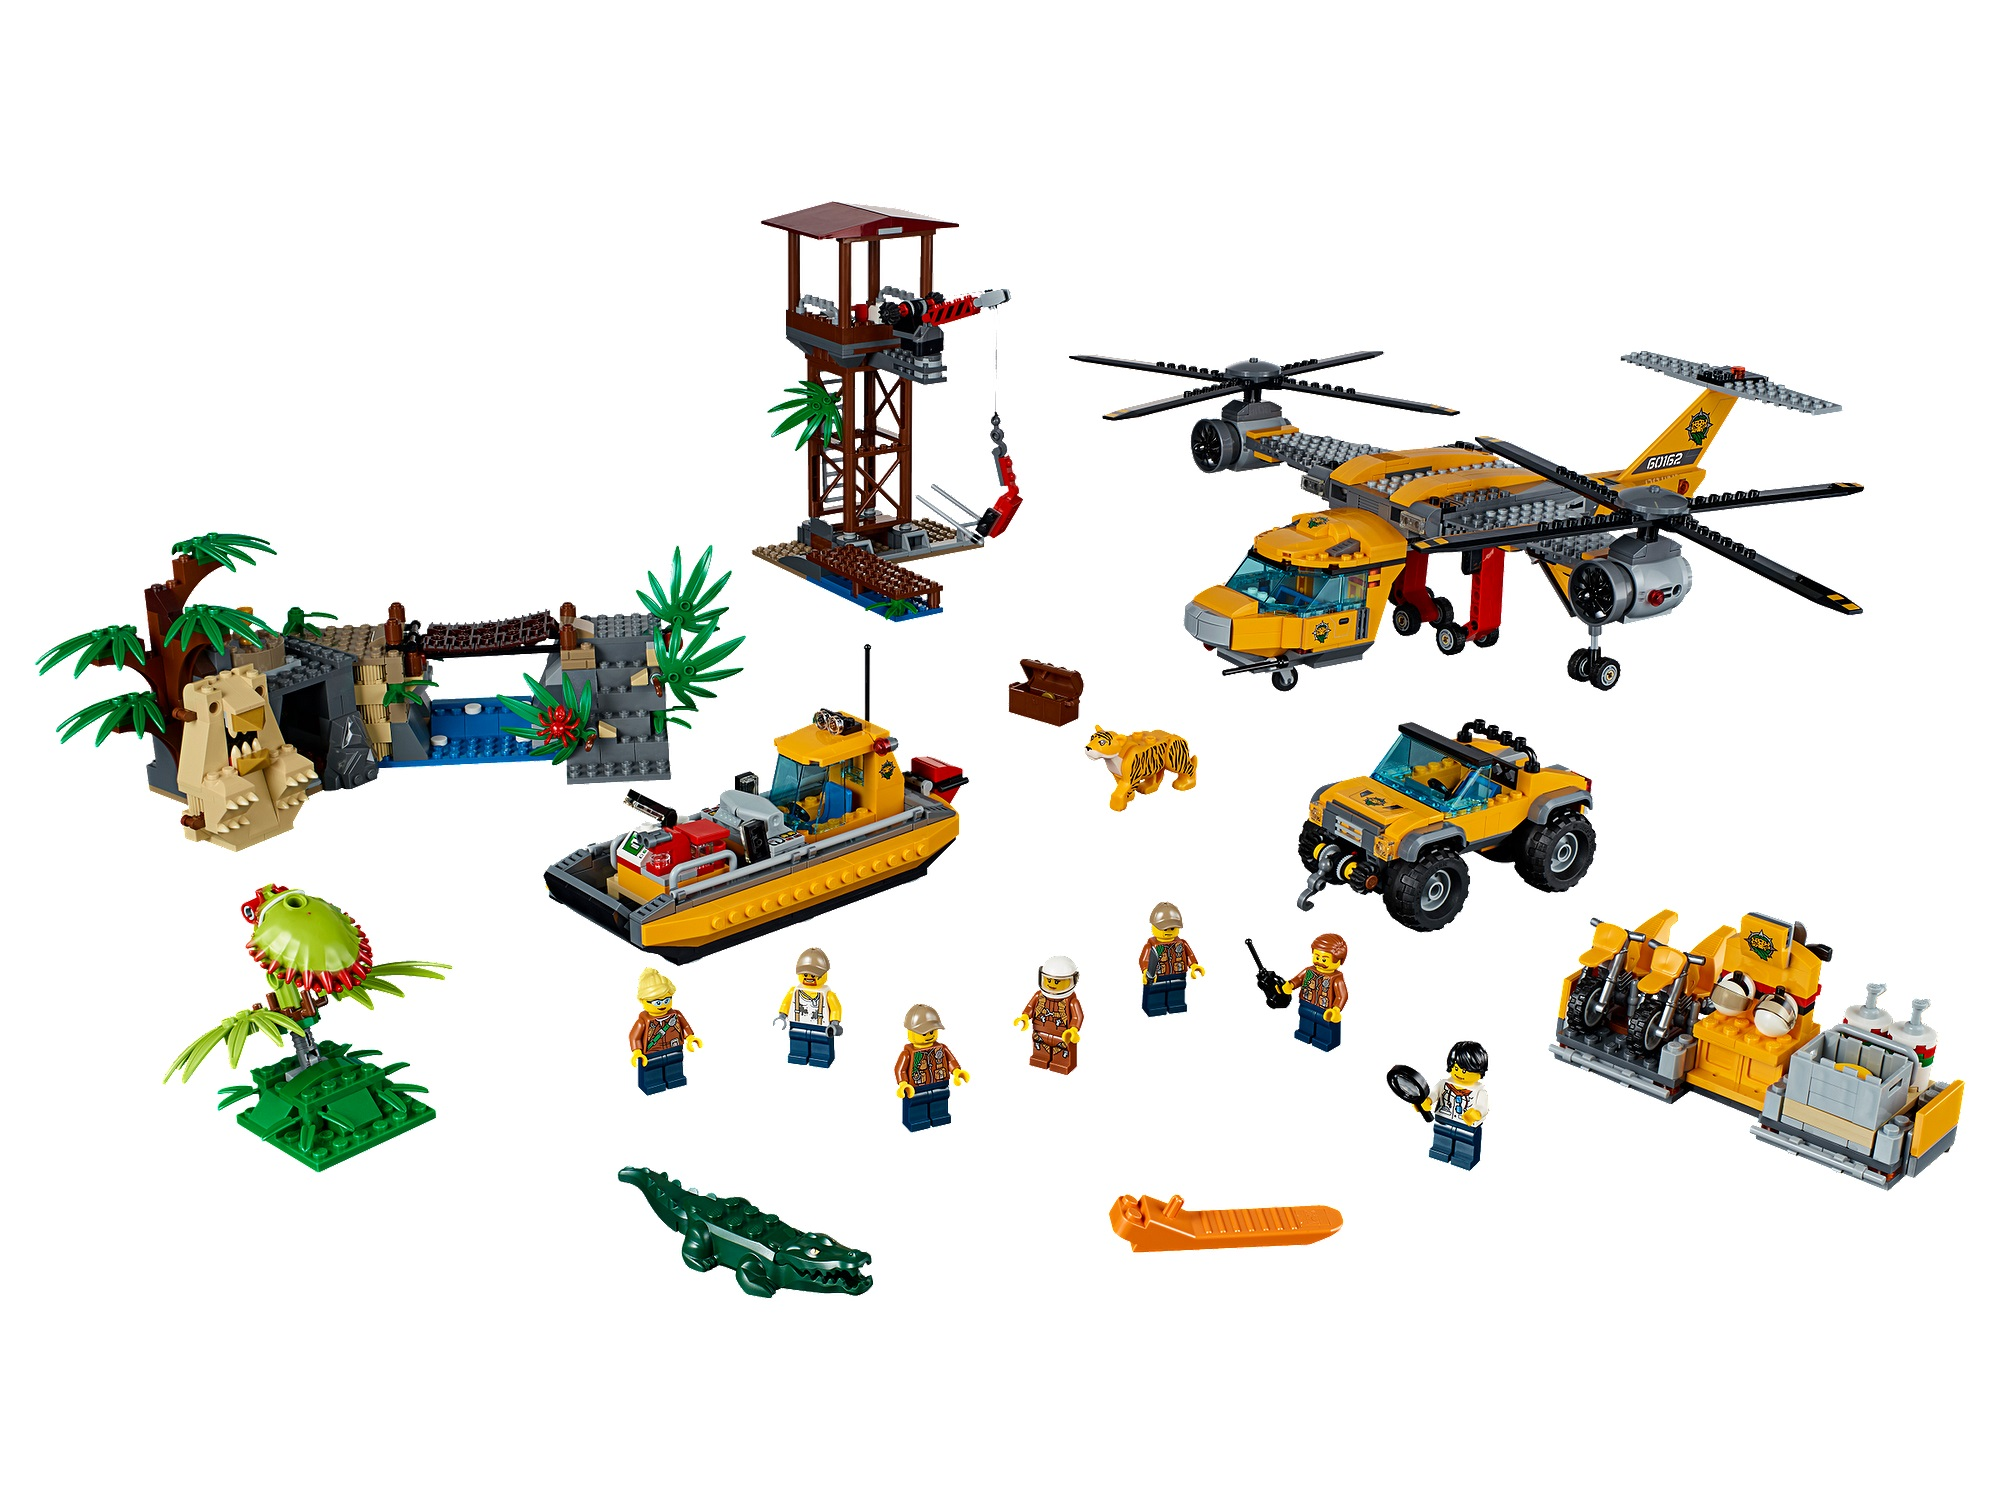 batman lego helicopter with Preview Lego City Jungle 2017 Sets on 2nd Half Of 2017 Lego Highlights From The New York Toy Fair moreover Lego Polizei Hubschrauber further 3d Tattoo Optical Illusion further Theme Batman additionally Fire Station.